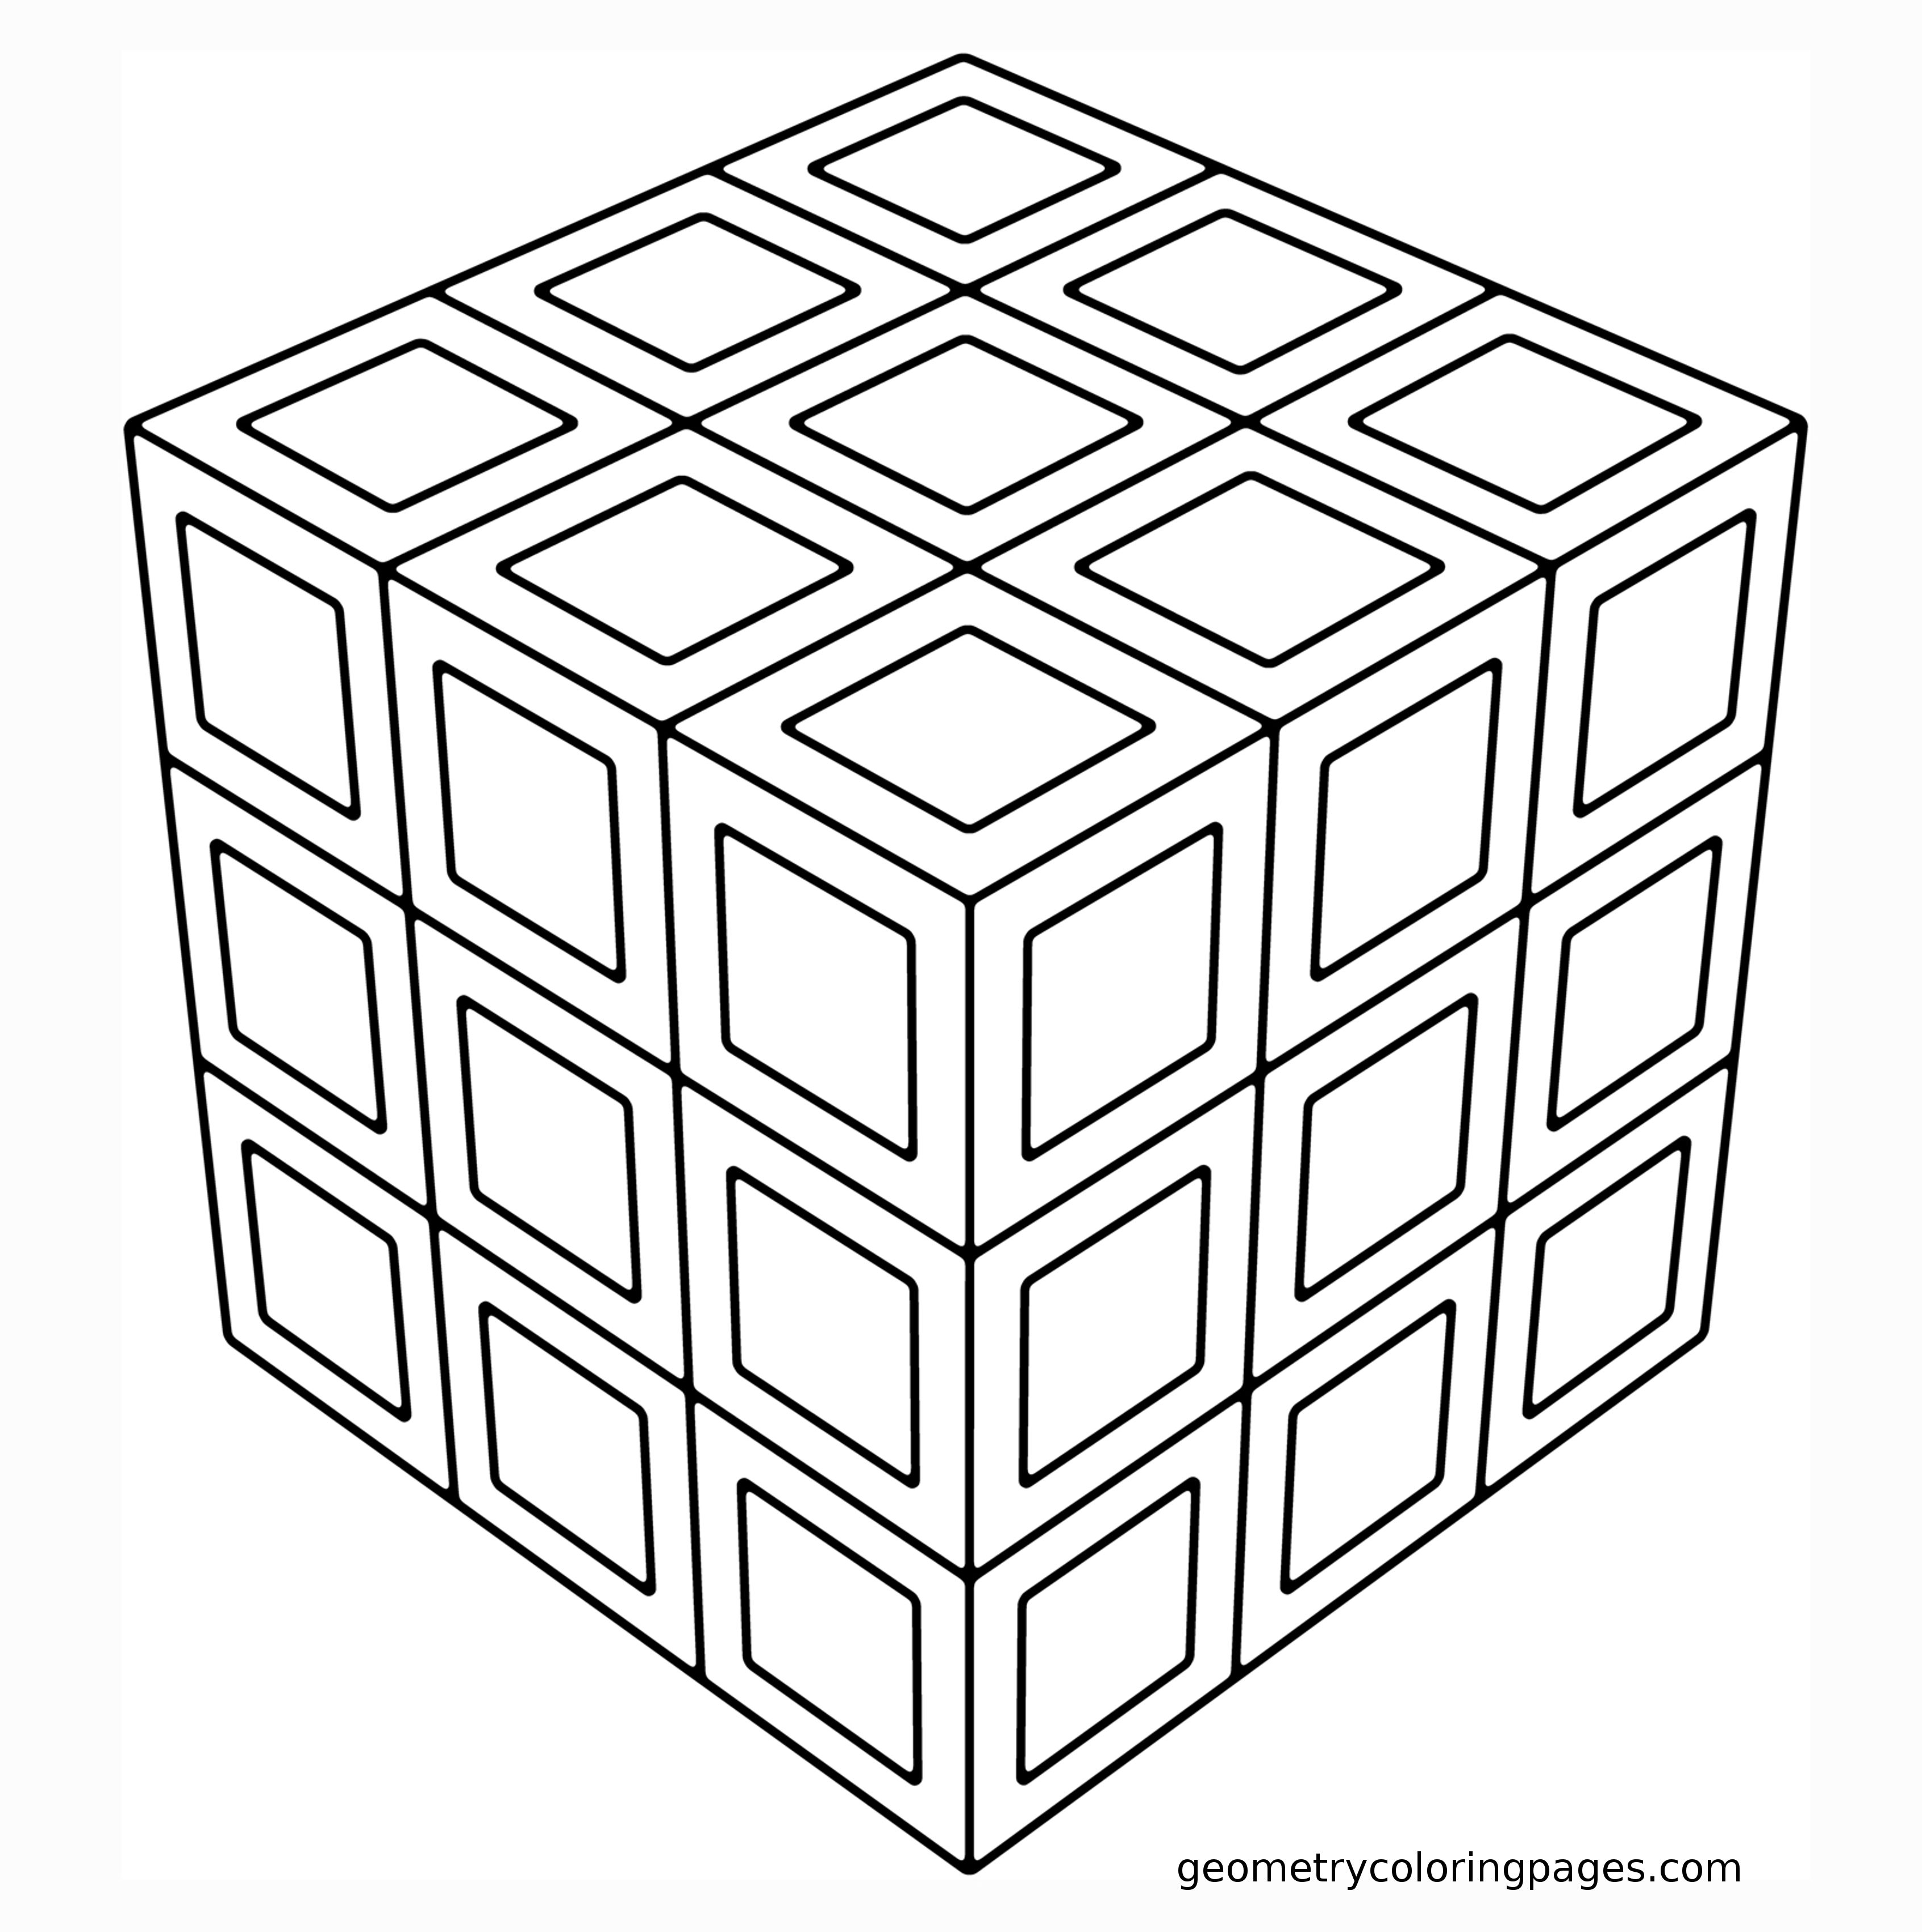 geometric coloring pages to print free image